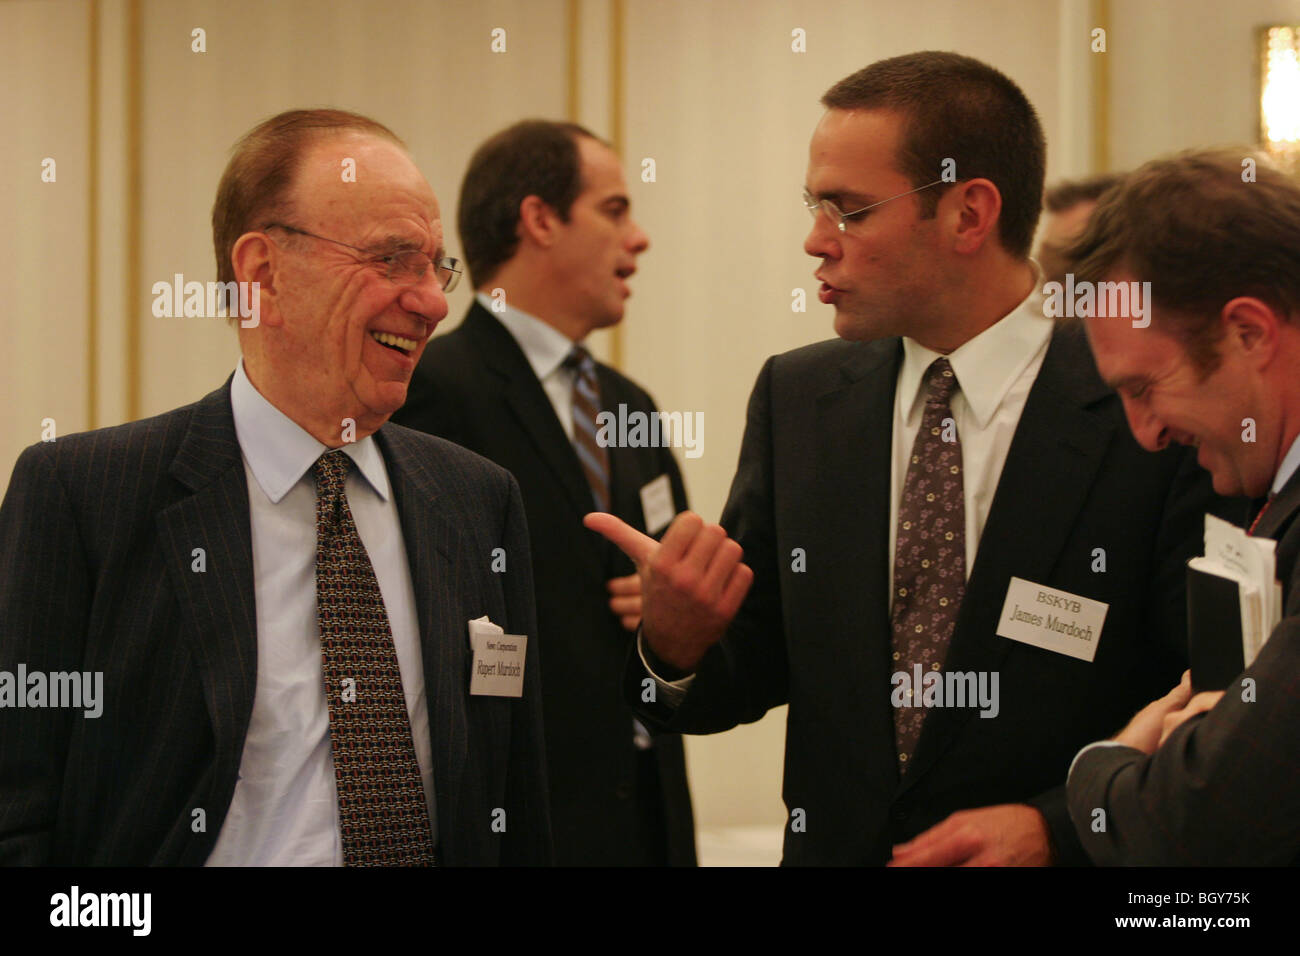 Rupert Murdoch, Chairman and CEO of News Corporation, and his son James, in Tokyo, Japan. - Stock Image